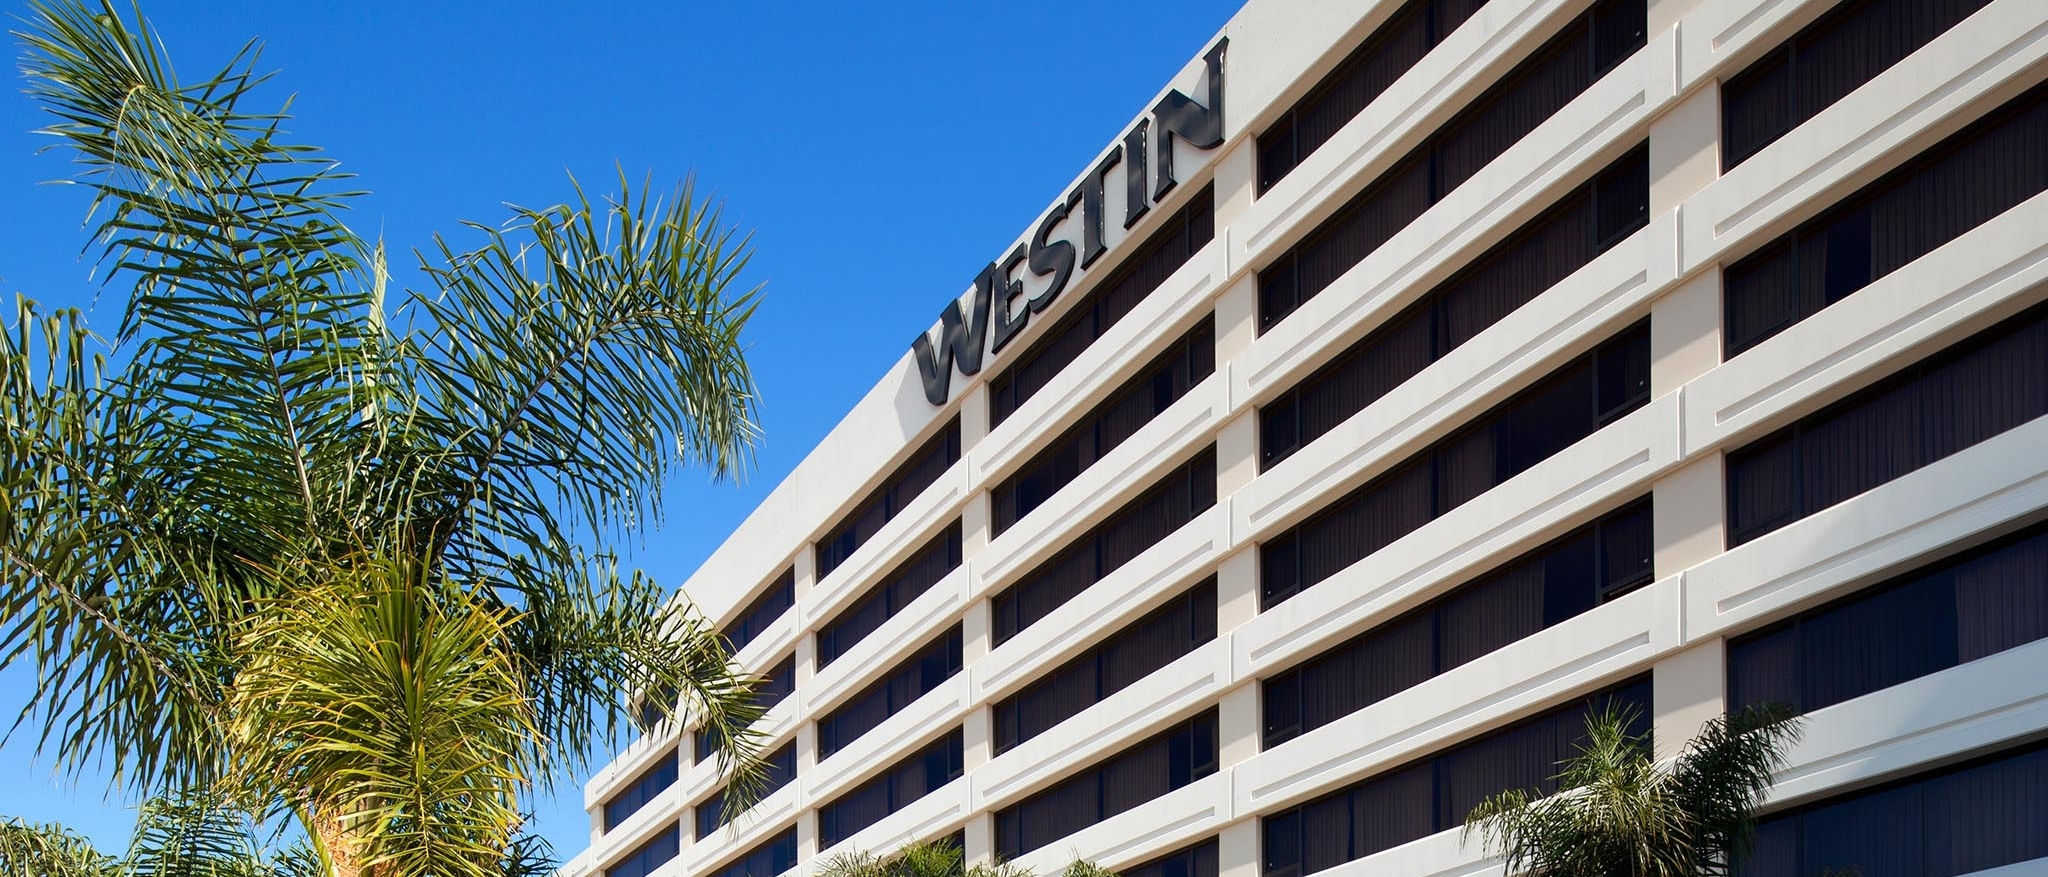 LAX Parking Rates -  Hotel Exterior